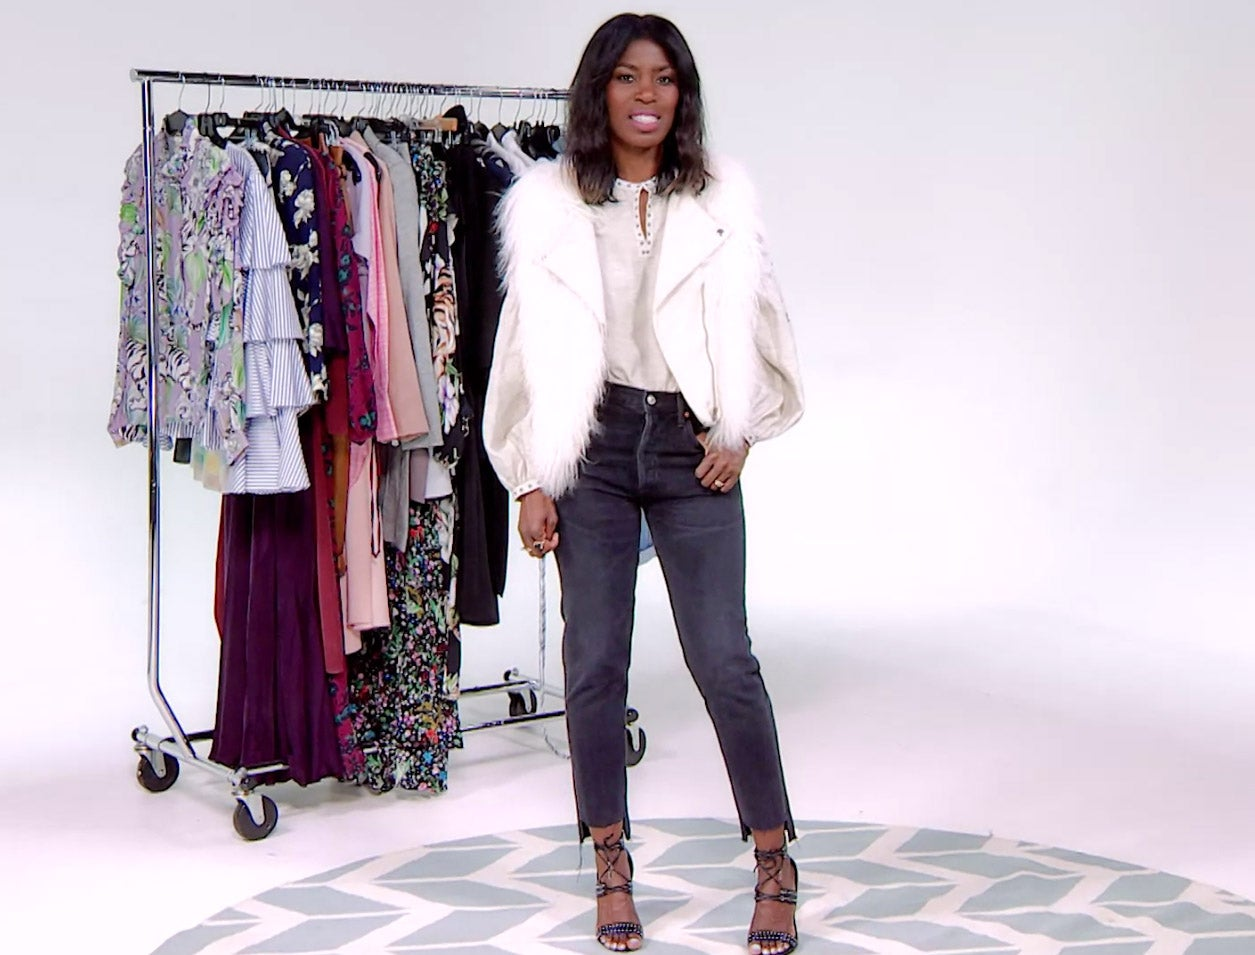 Style Goals: How to Rock The Runway Your Way